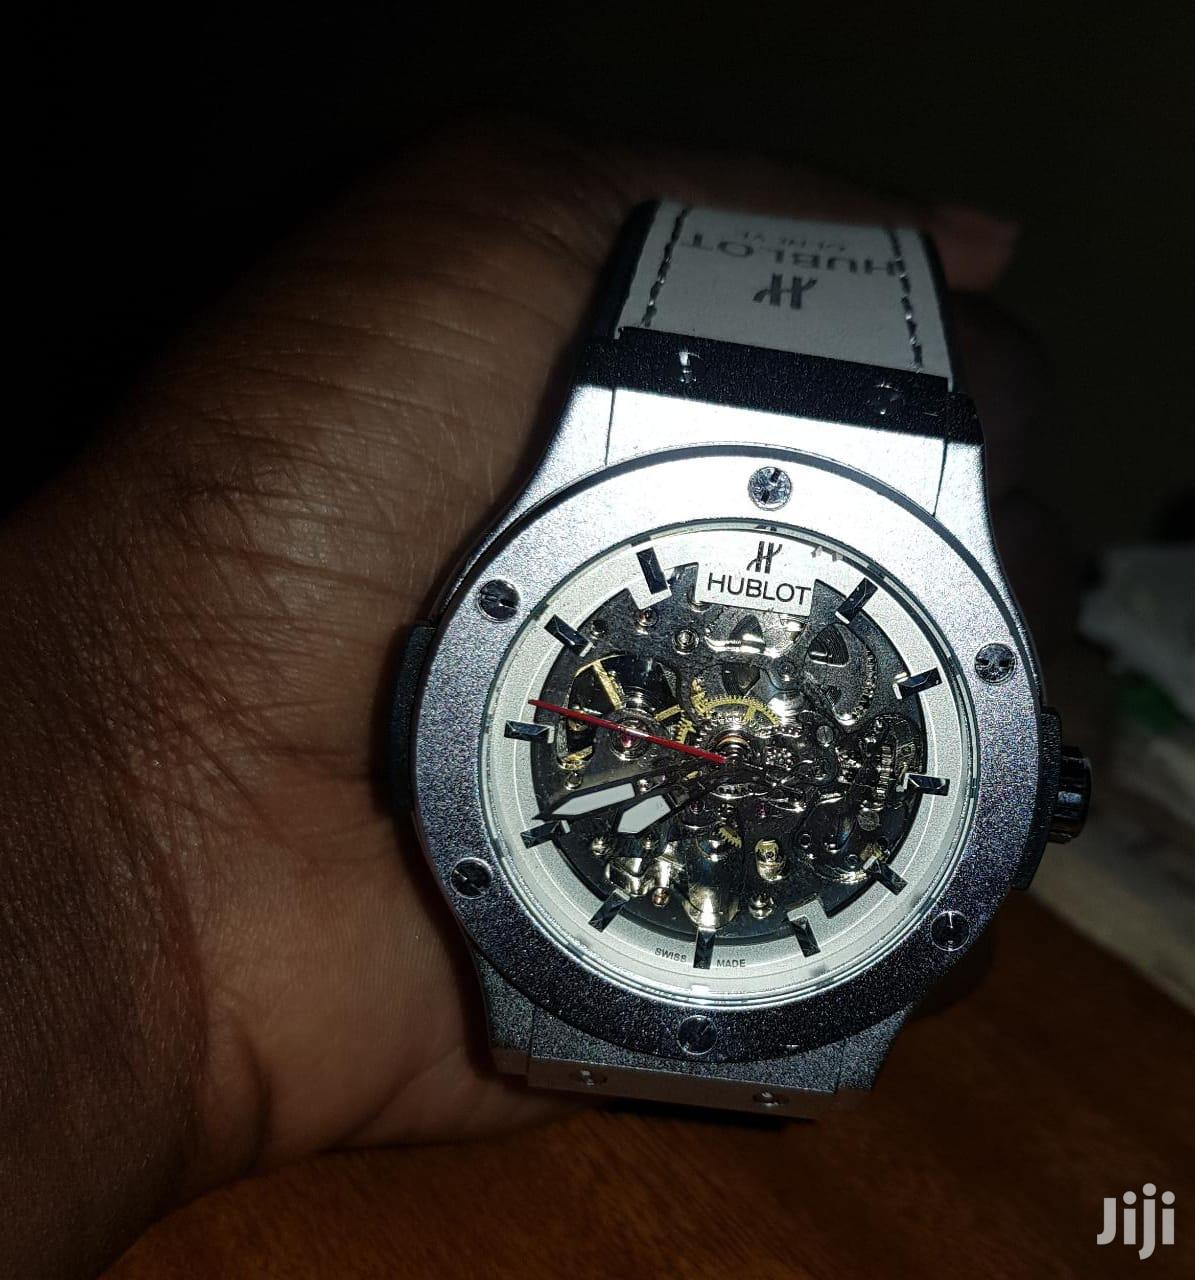 Hublot Grey And Silver Elegance | Watches for sale in Nairobi Central, Nairobi, Kenya